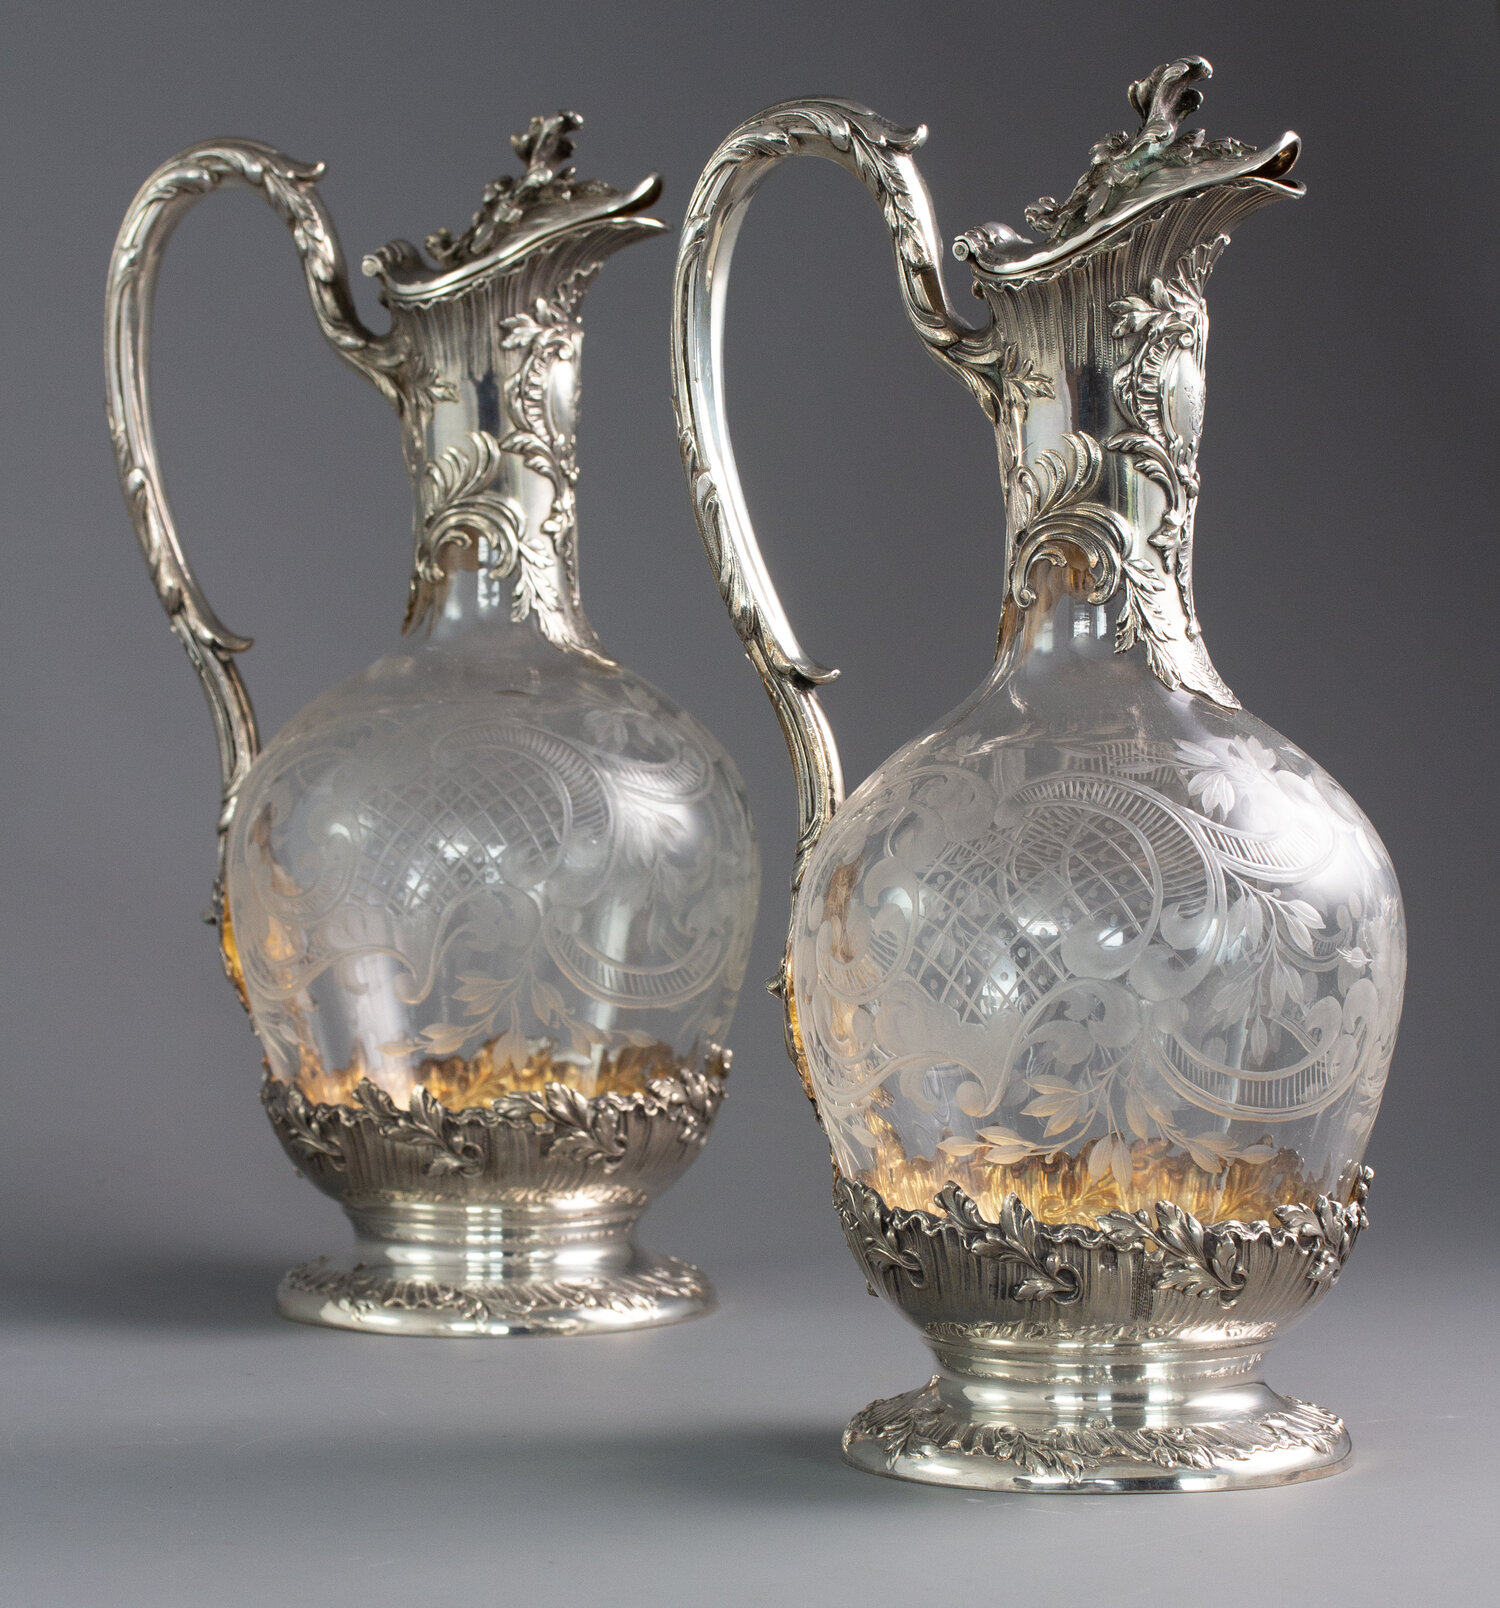 An exceptional pair of late 19th century French silver and crystal claret jugs.   Forrest & Fraser - P12